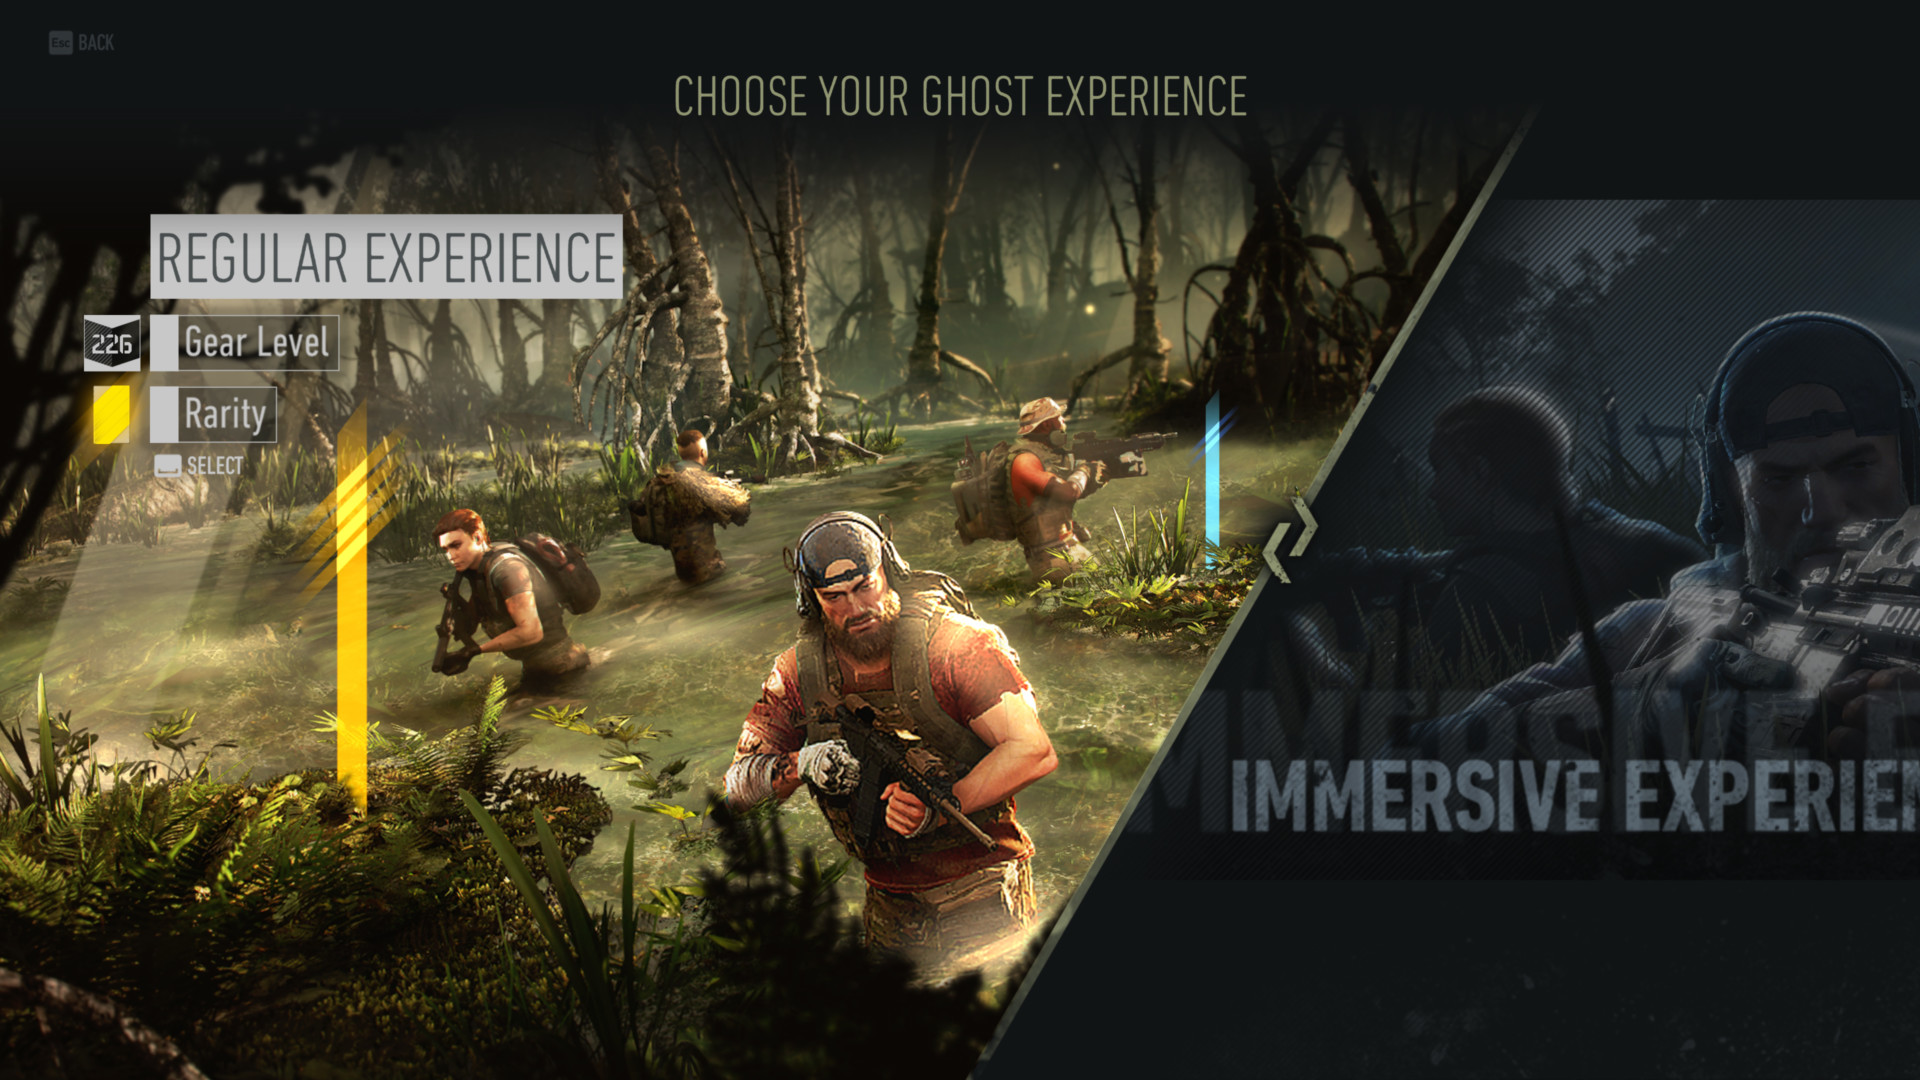 Choose your ghost experience screenshot of Tom Clancy's Ghost Recon: Breakpoint video game interface.